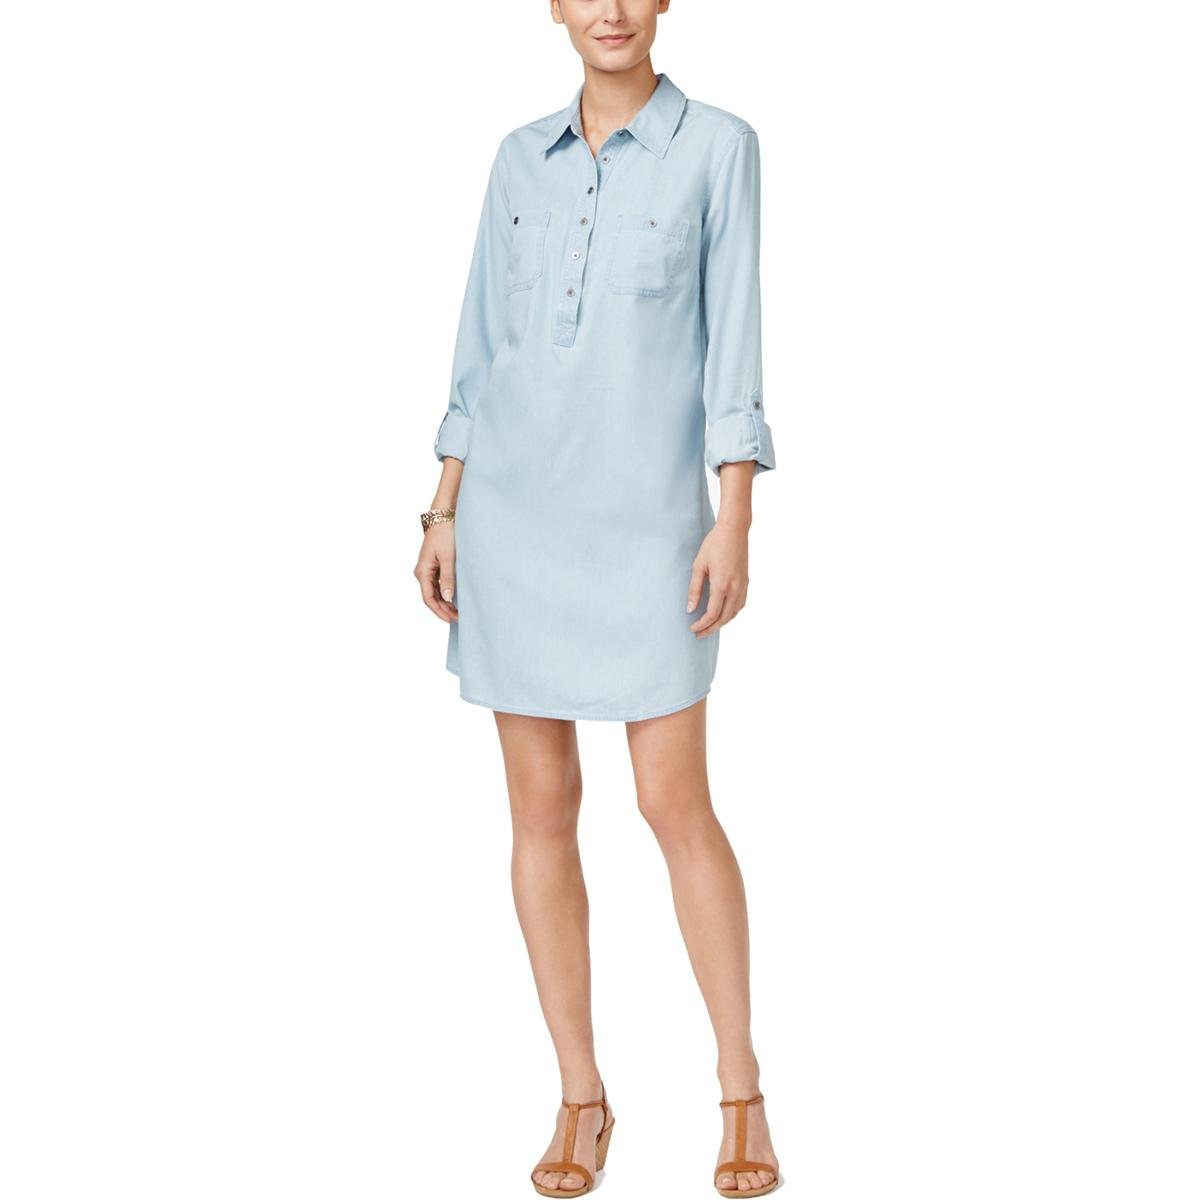 Style & Co. Womens Petites Chambray Adjustable Sleeves Shirtdress Blue PL by Style & Co.